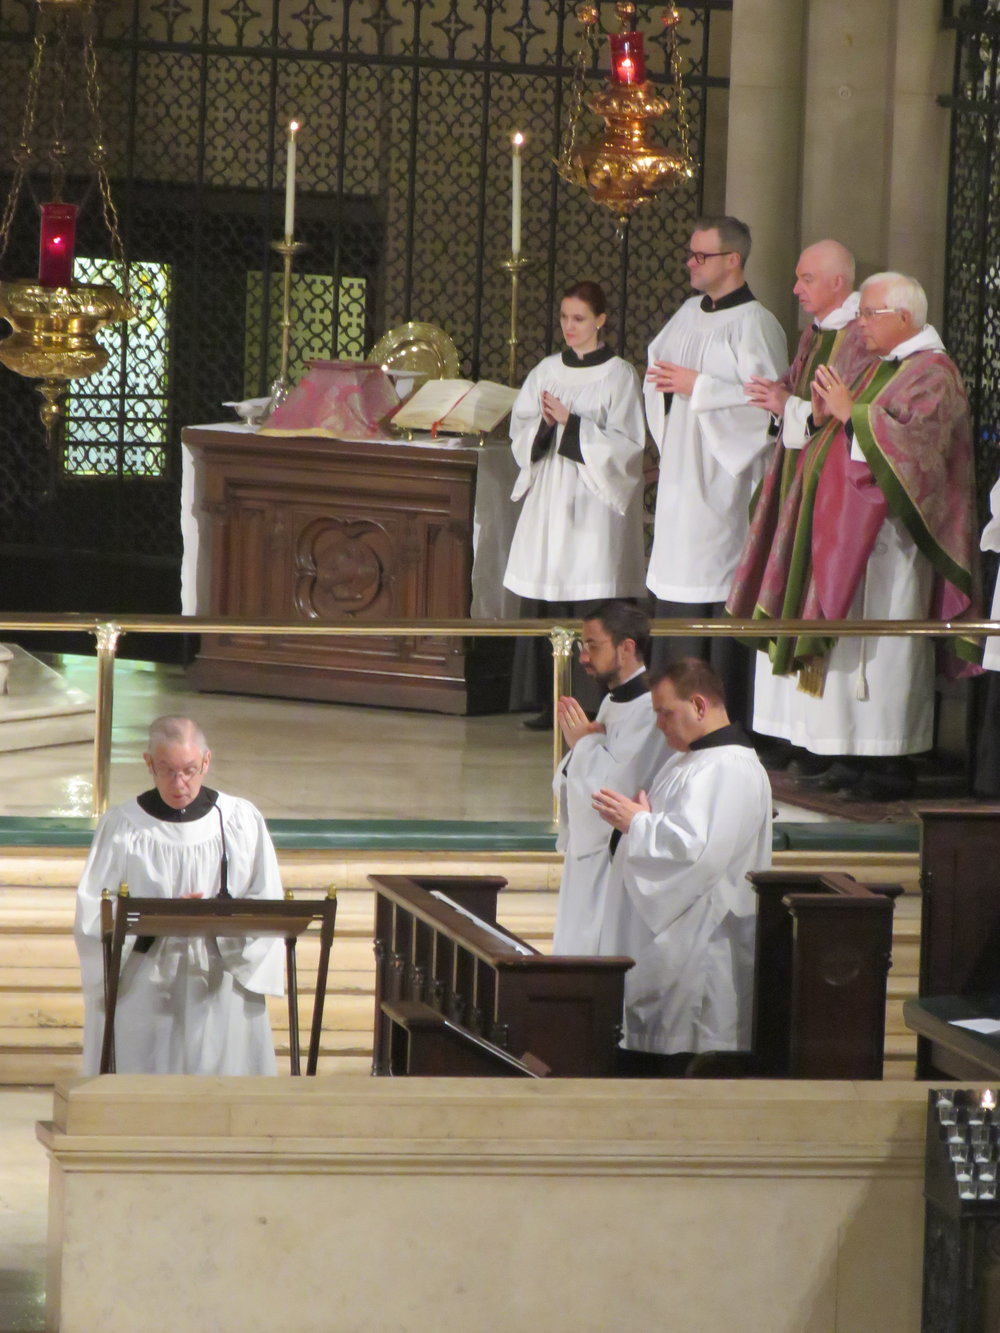 Leroy Sharer led the prayers of the people.   Photo by Br. Damien Joseph SSF